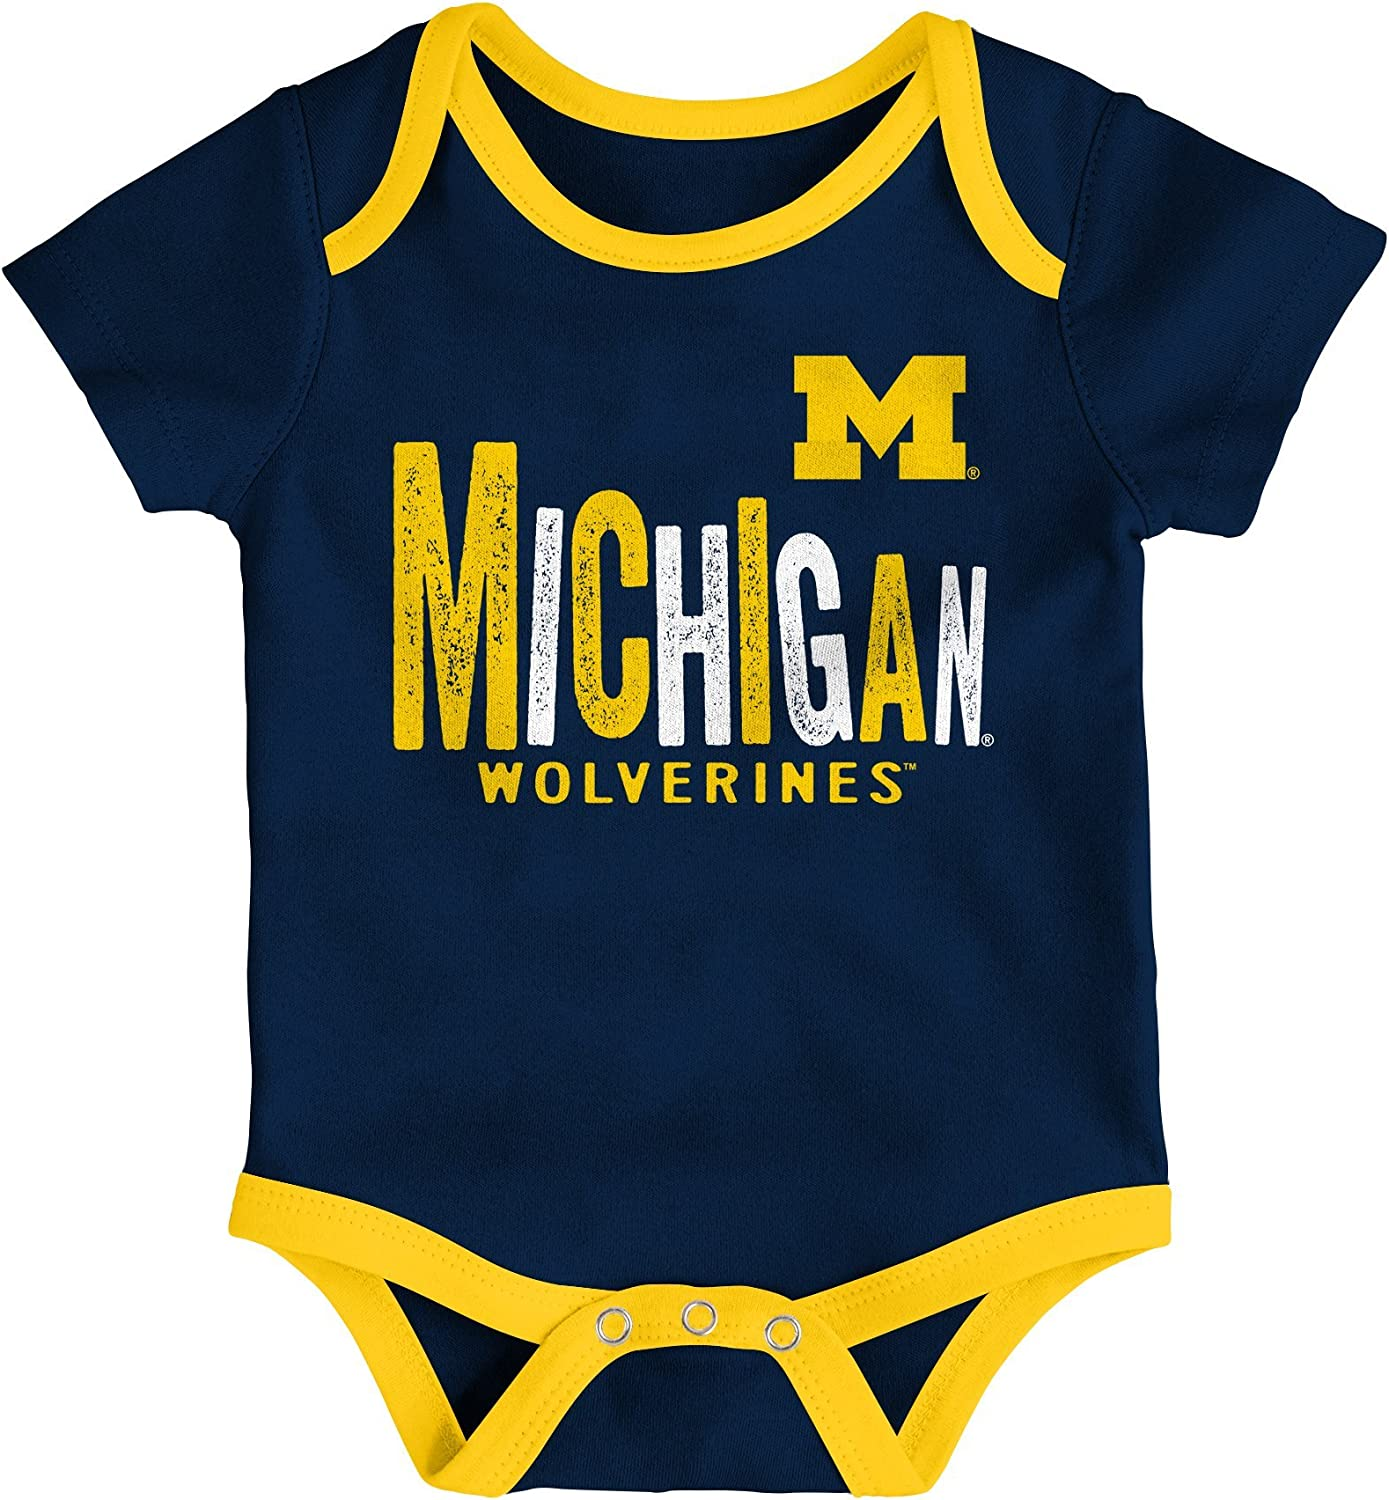 Michigan Wolverines Infant Baby 3-6 mon Booties Slippers NEW Shower Gift NCAA